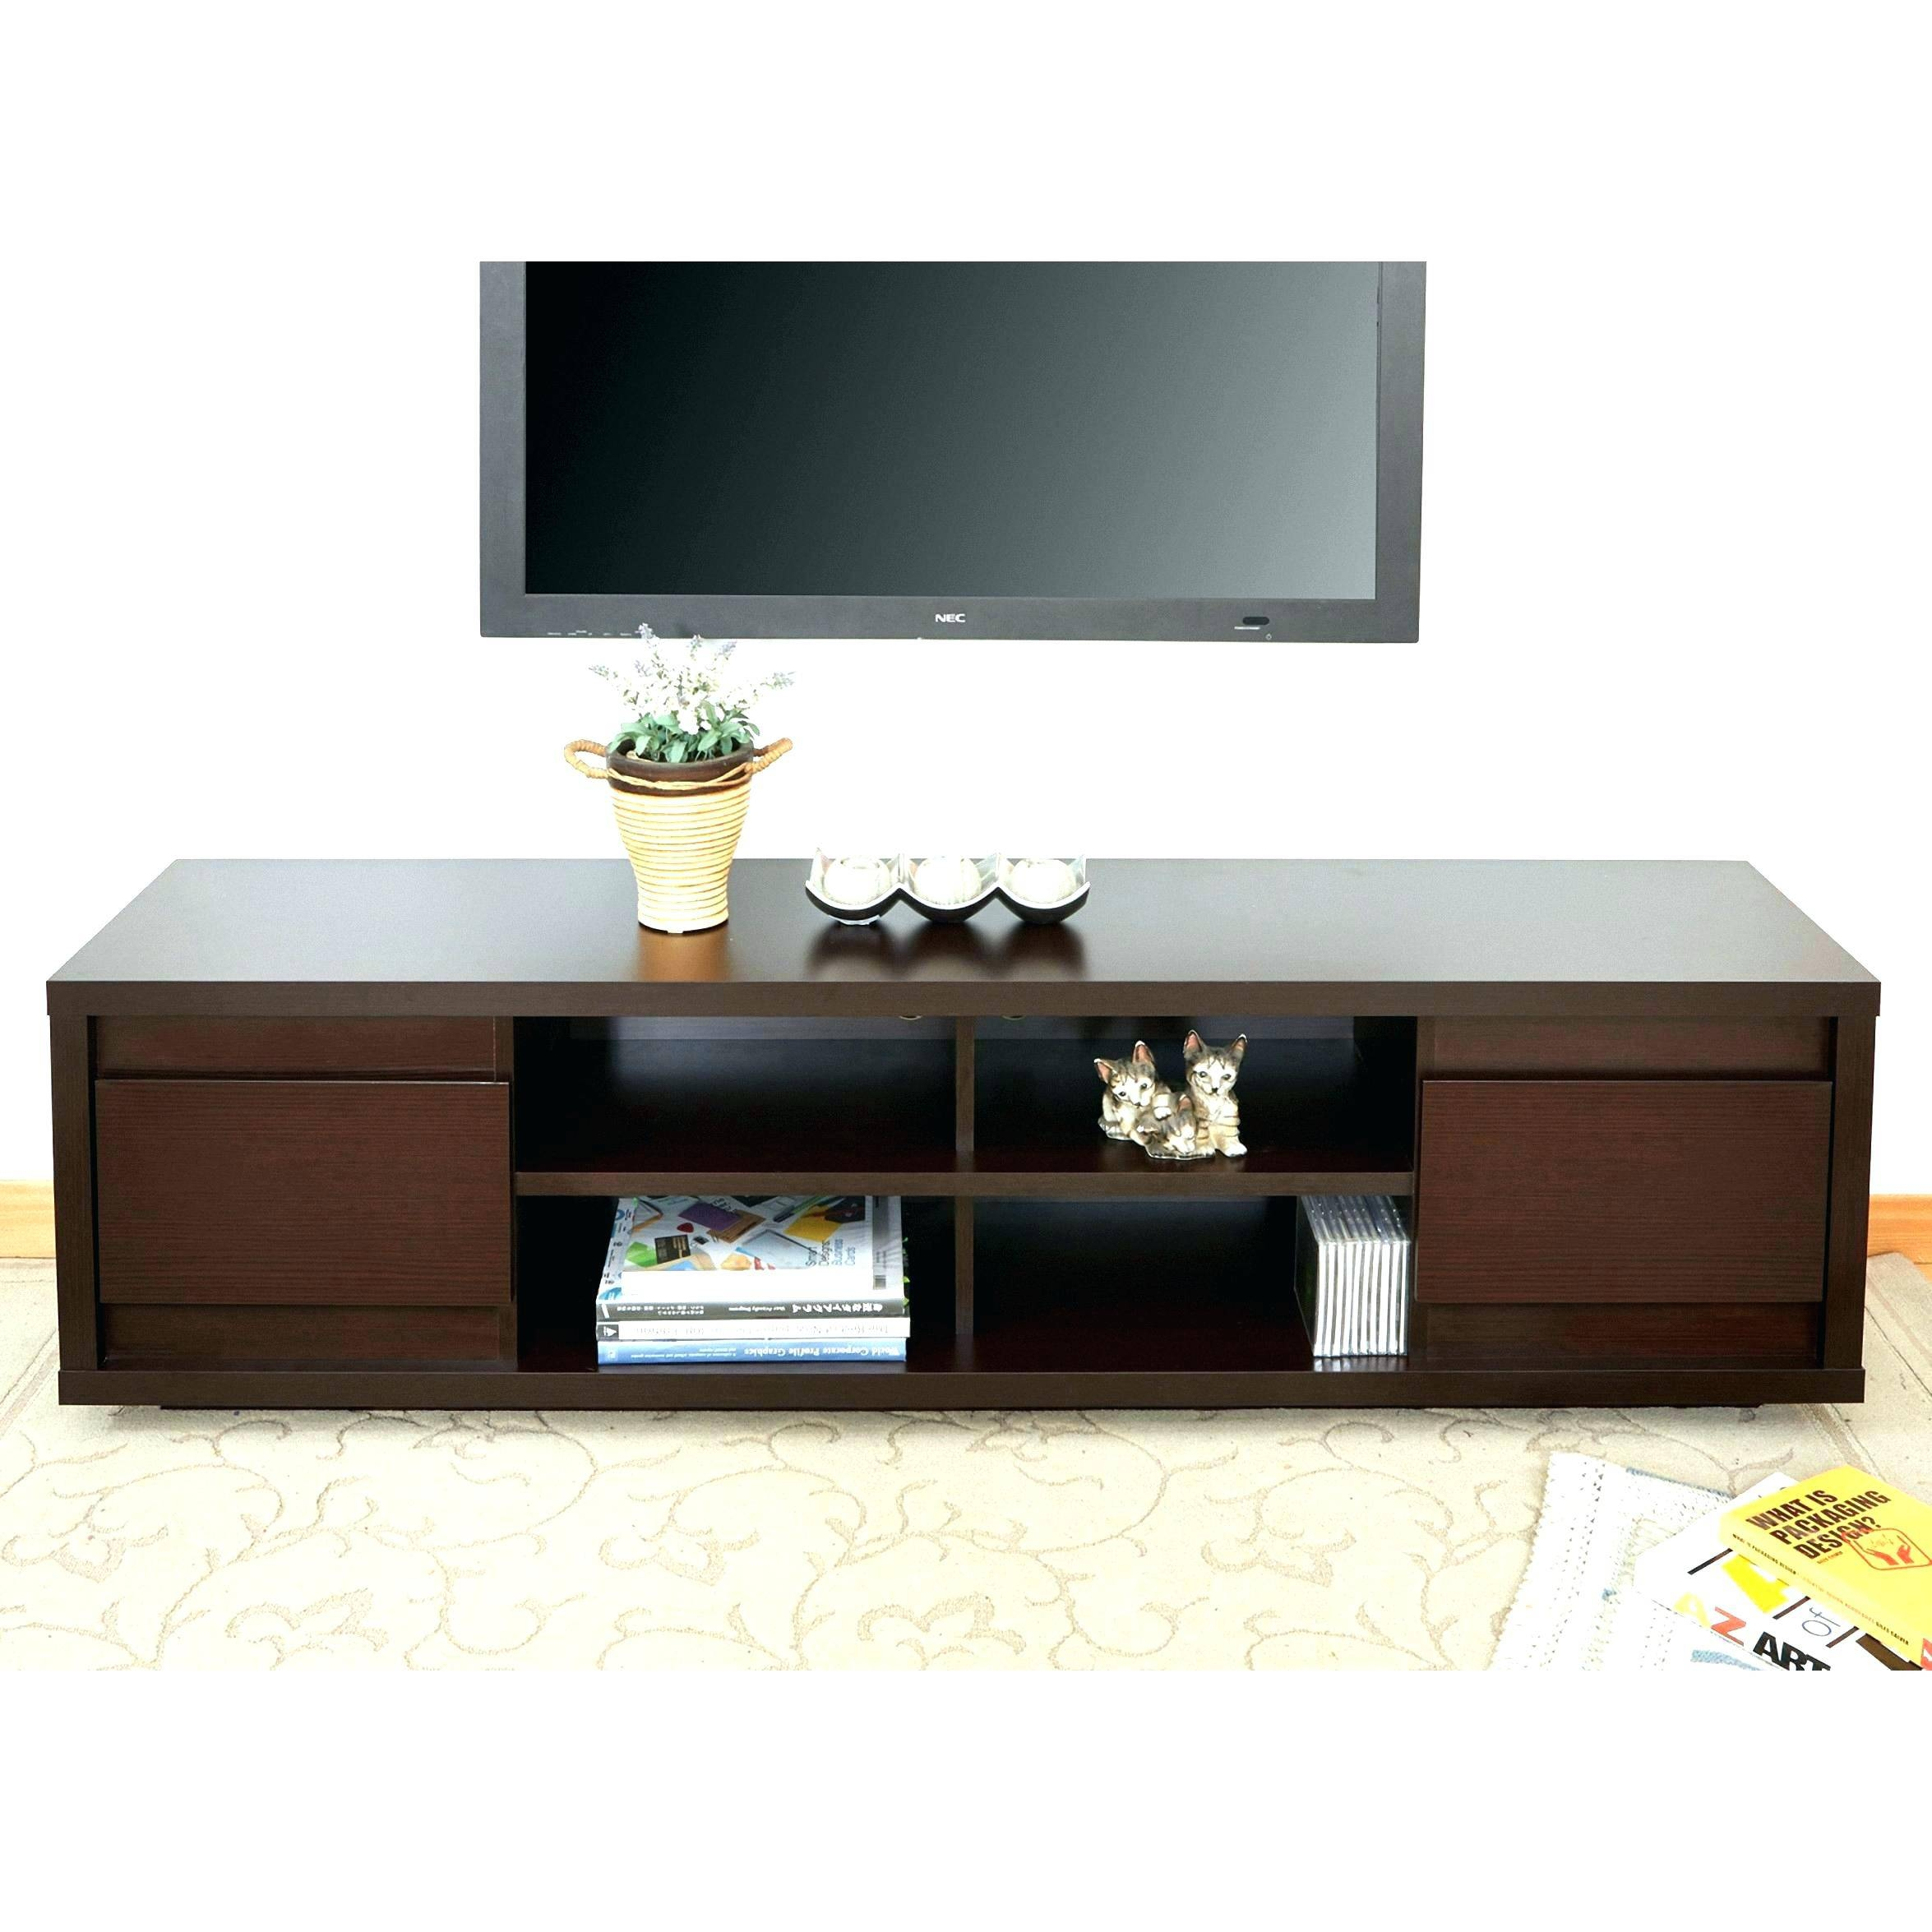 Tv Stand: Ergonomic Silver Corner Tv Stand For Home Space. Tv within Silver Corner Tv Stands (Image 12 of 15)